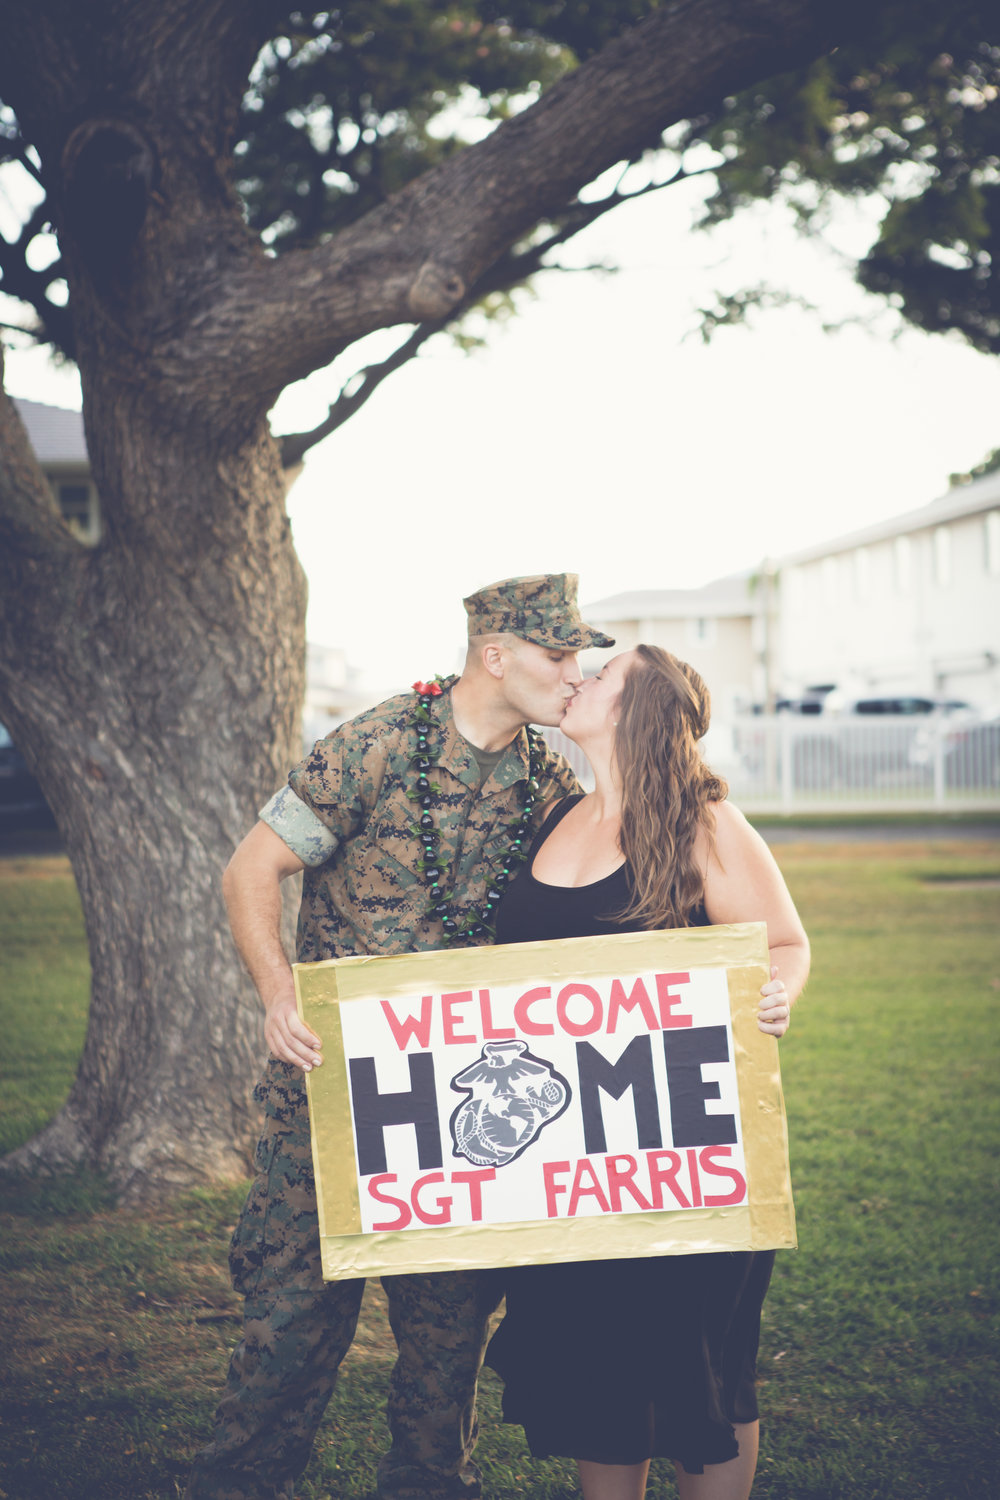 WelcomeHomeFarris-33.jpg